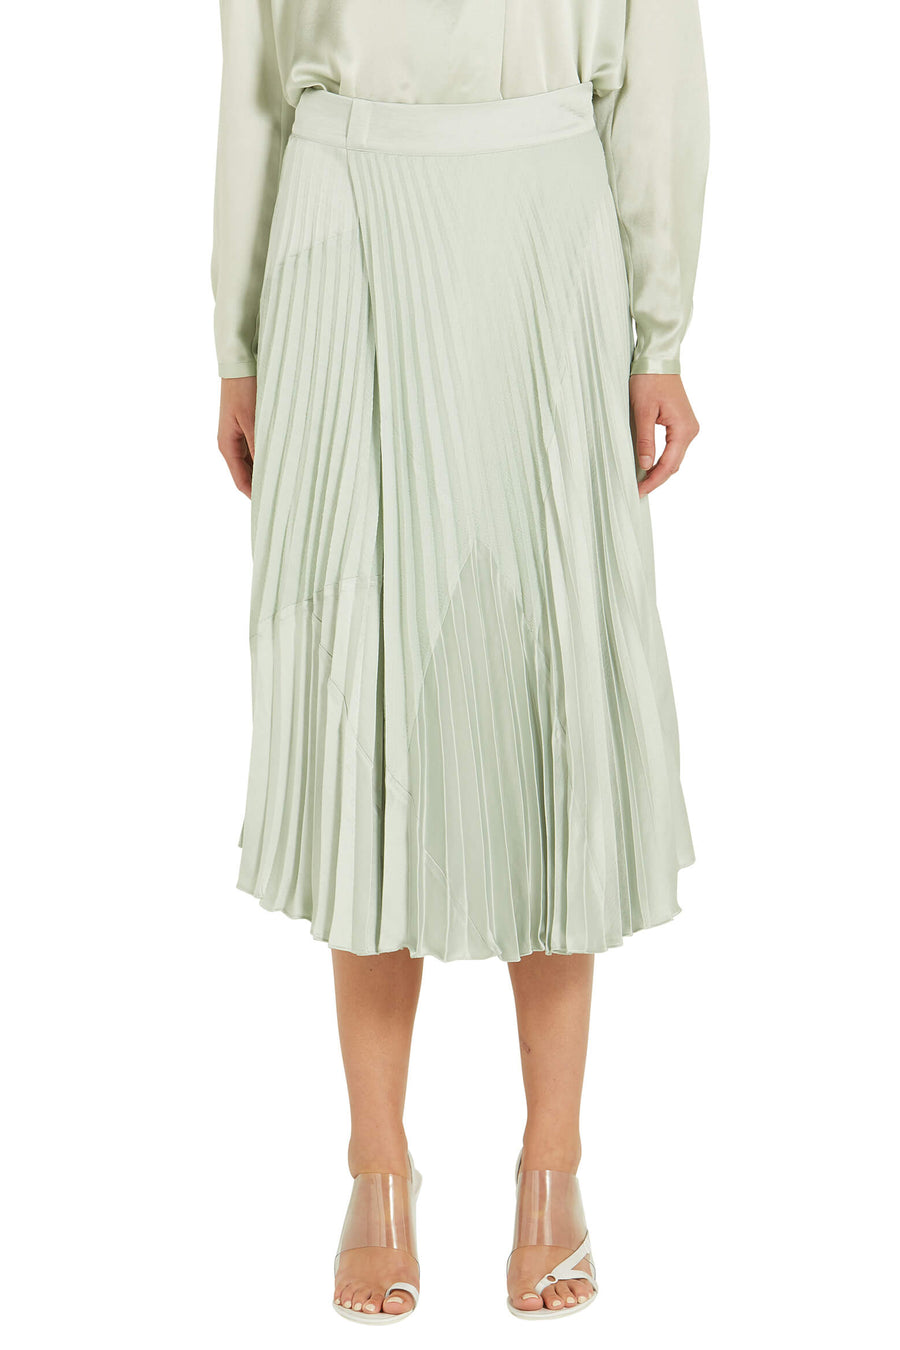 Vince Mixed Media Pleated Skirt in Aloe from The New Trend